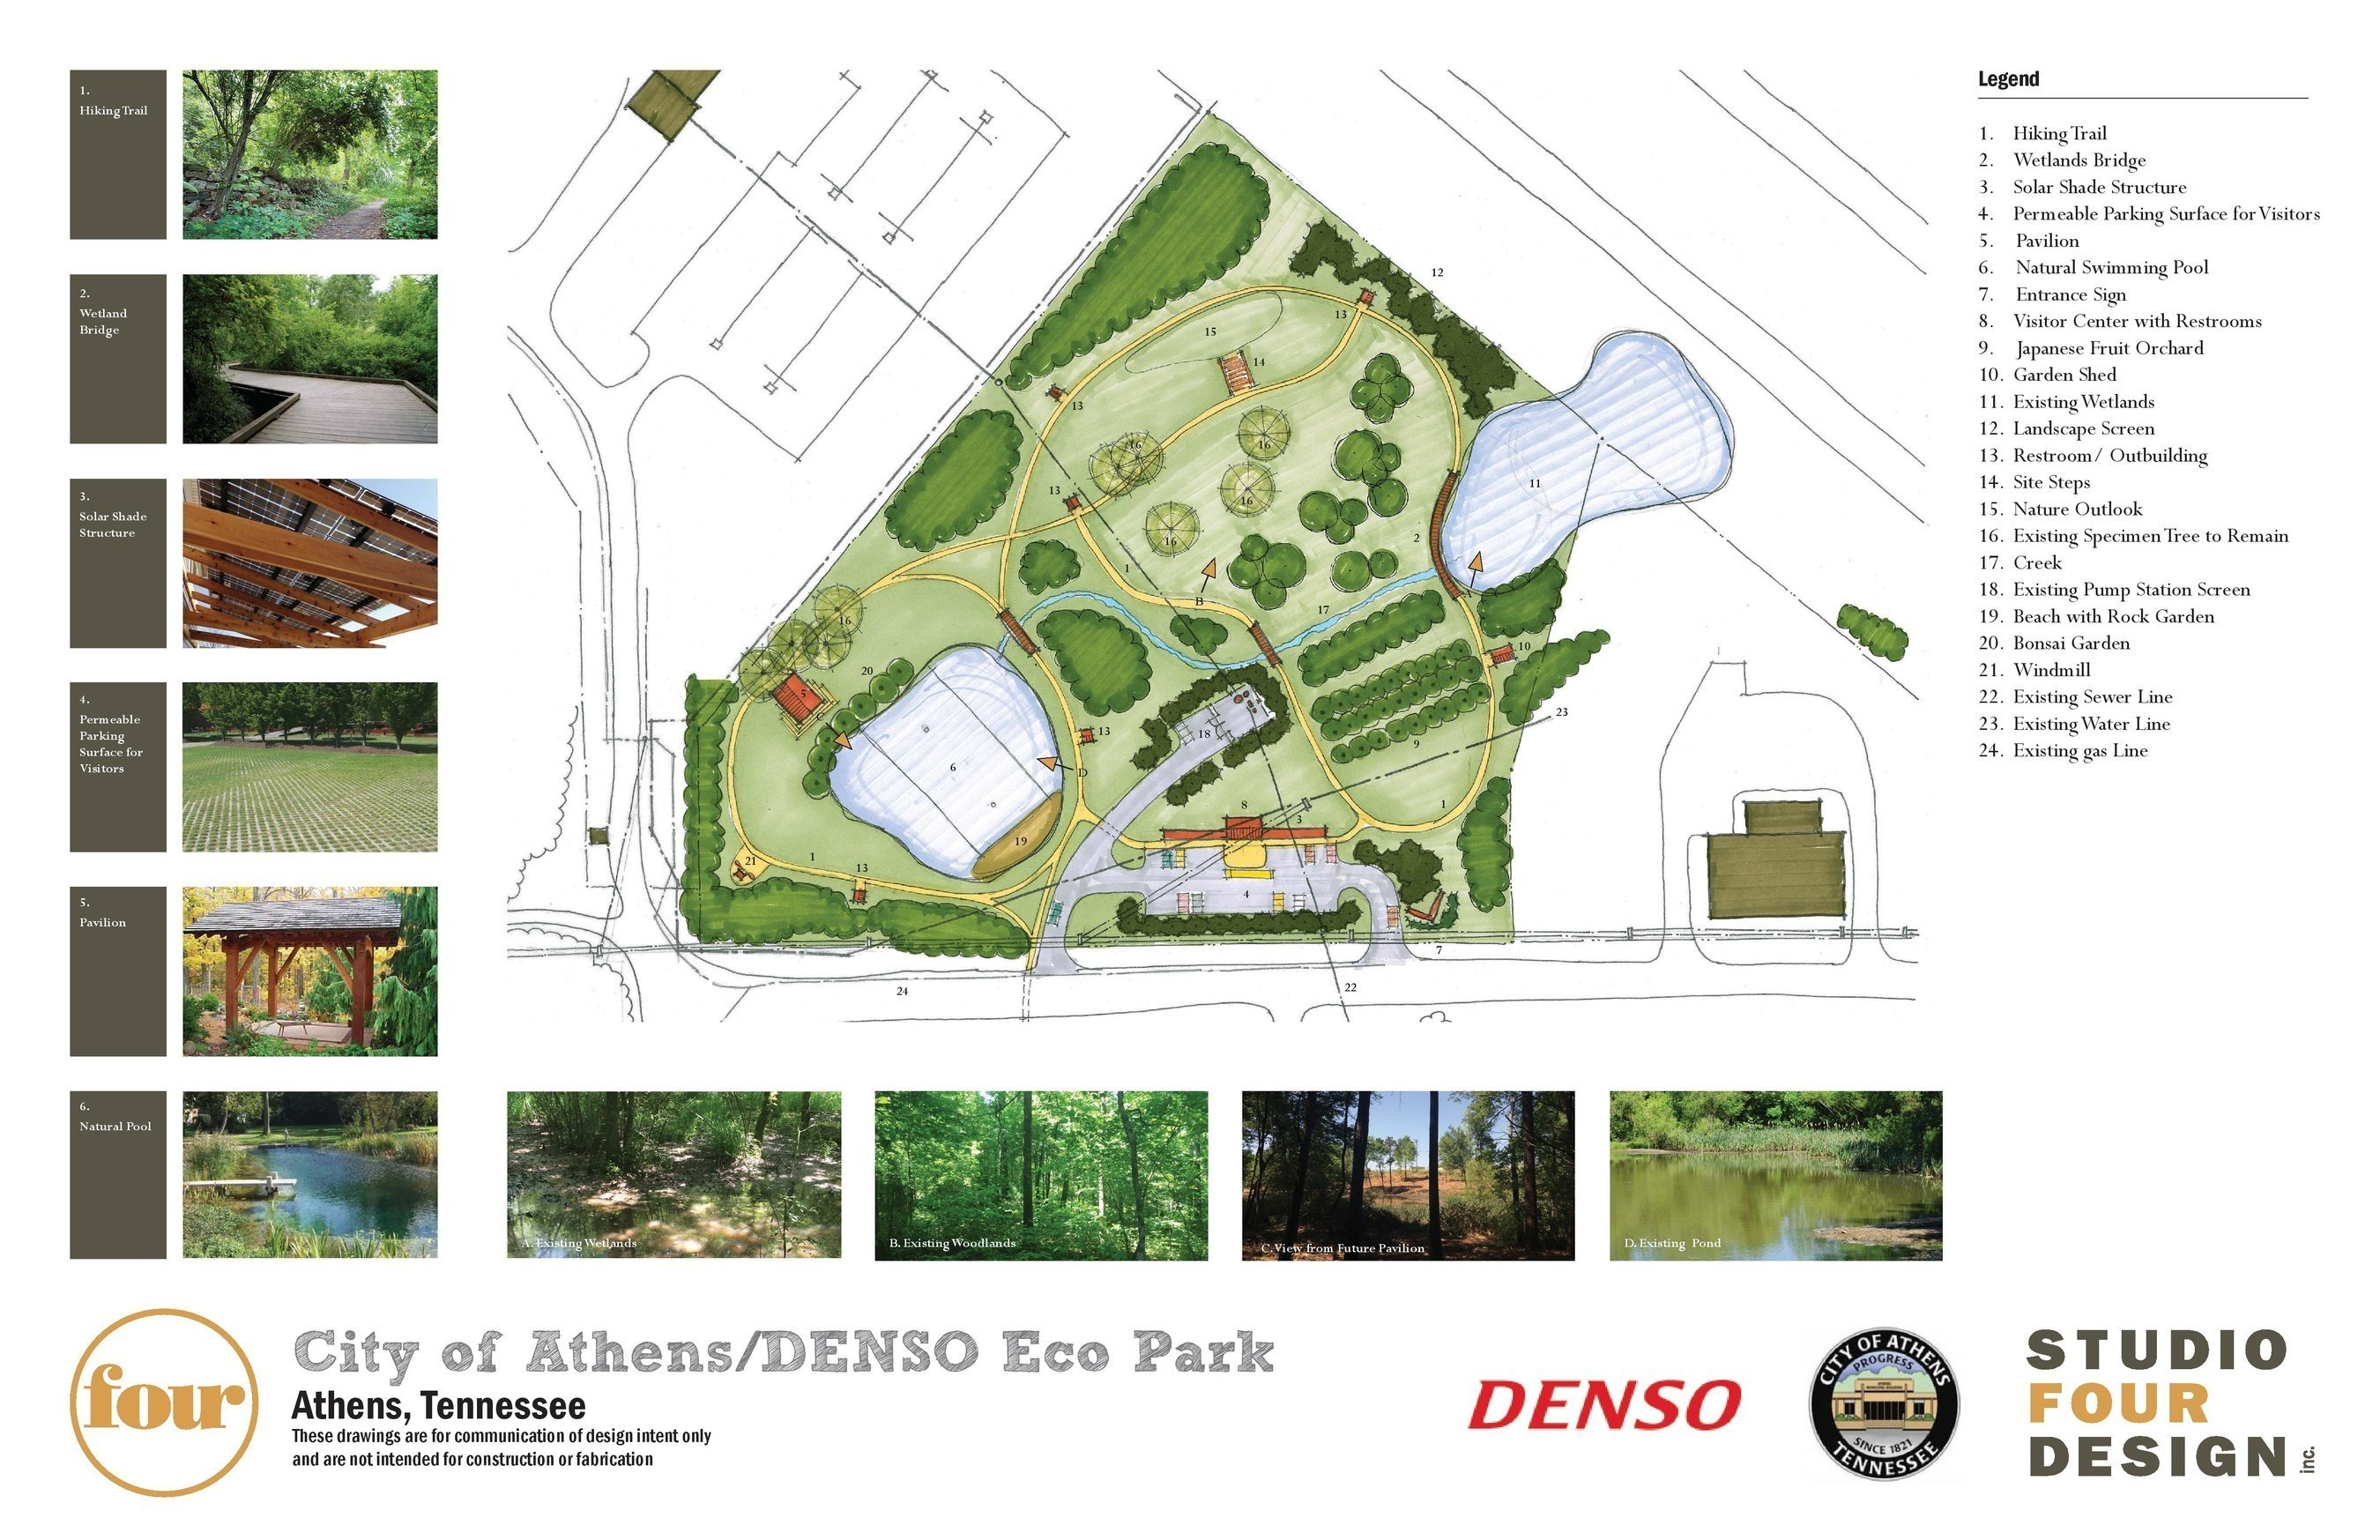 Studio Four Design brings the sustainable, Japanese-inspired eco-park vision of DENSO Manufacturing Athens Tennessee to life.